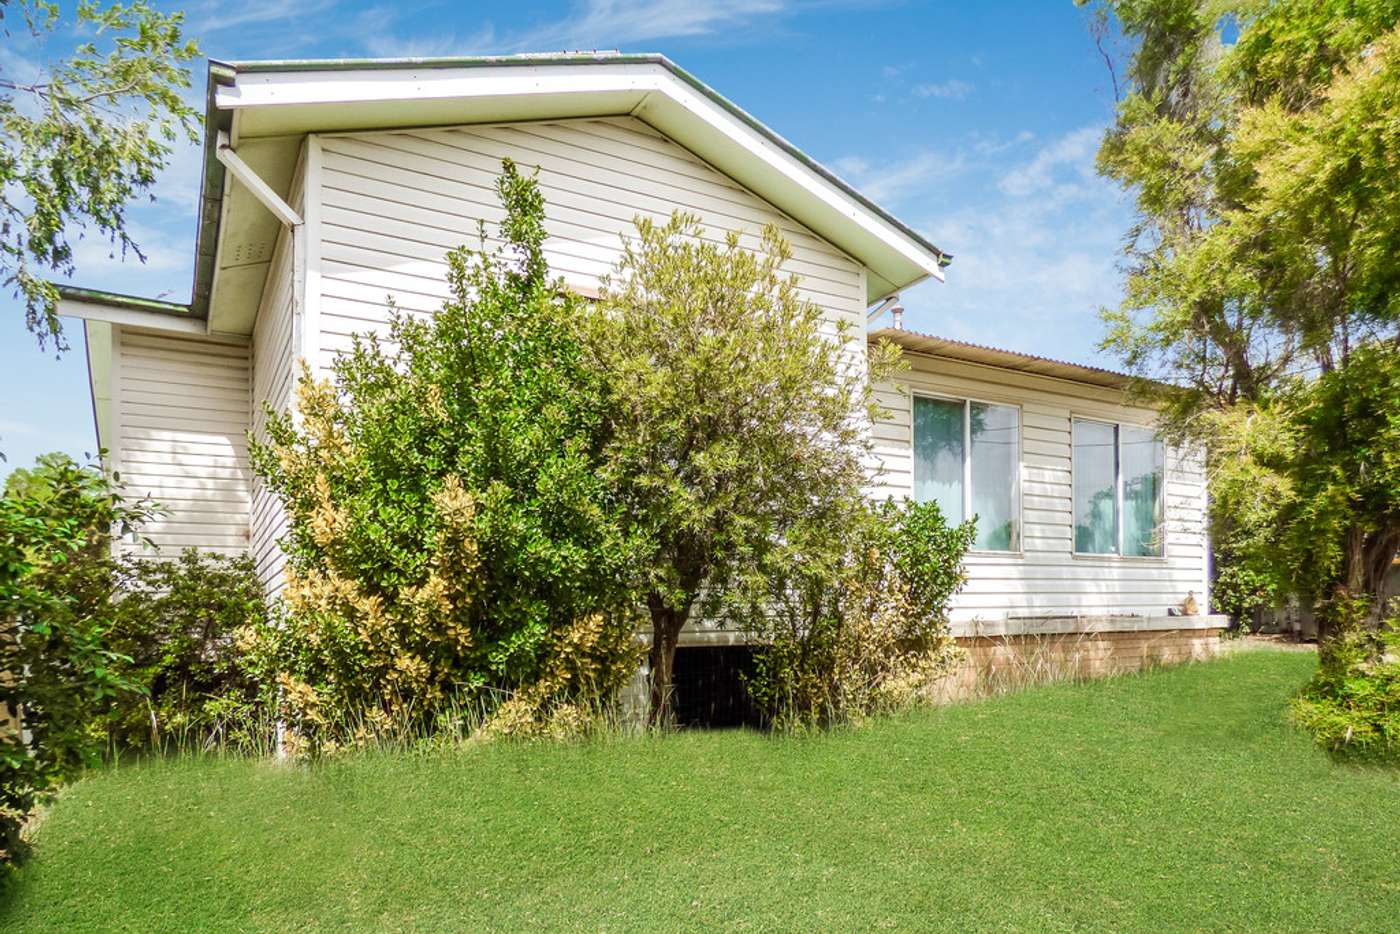 Main view of Homely house listing, 18 Templemore Street, Young NSW 2594